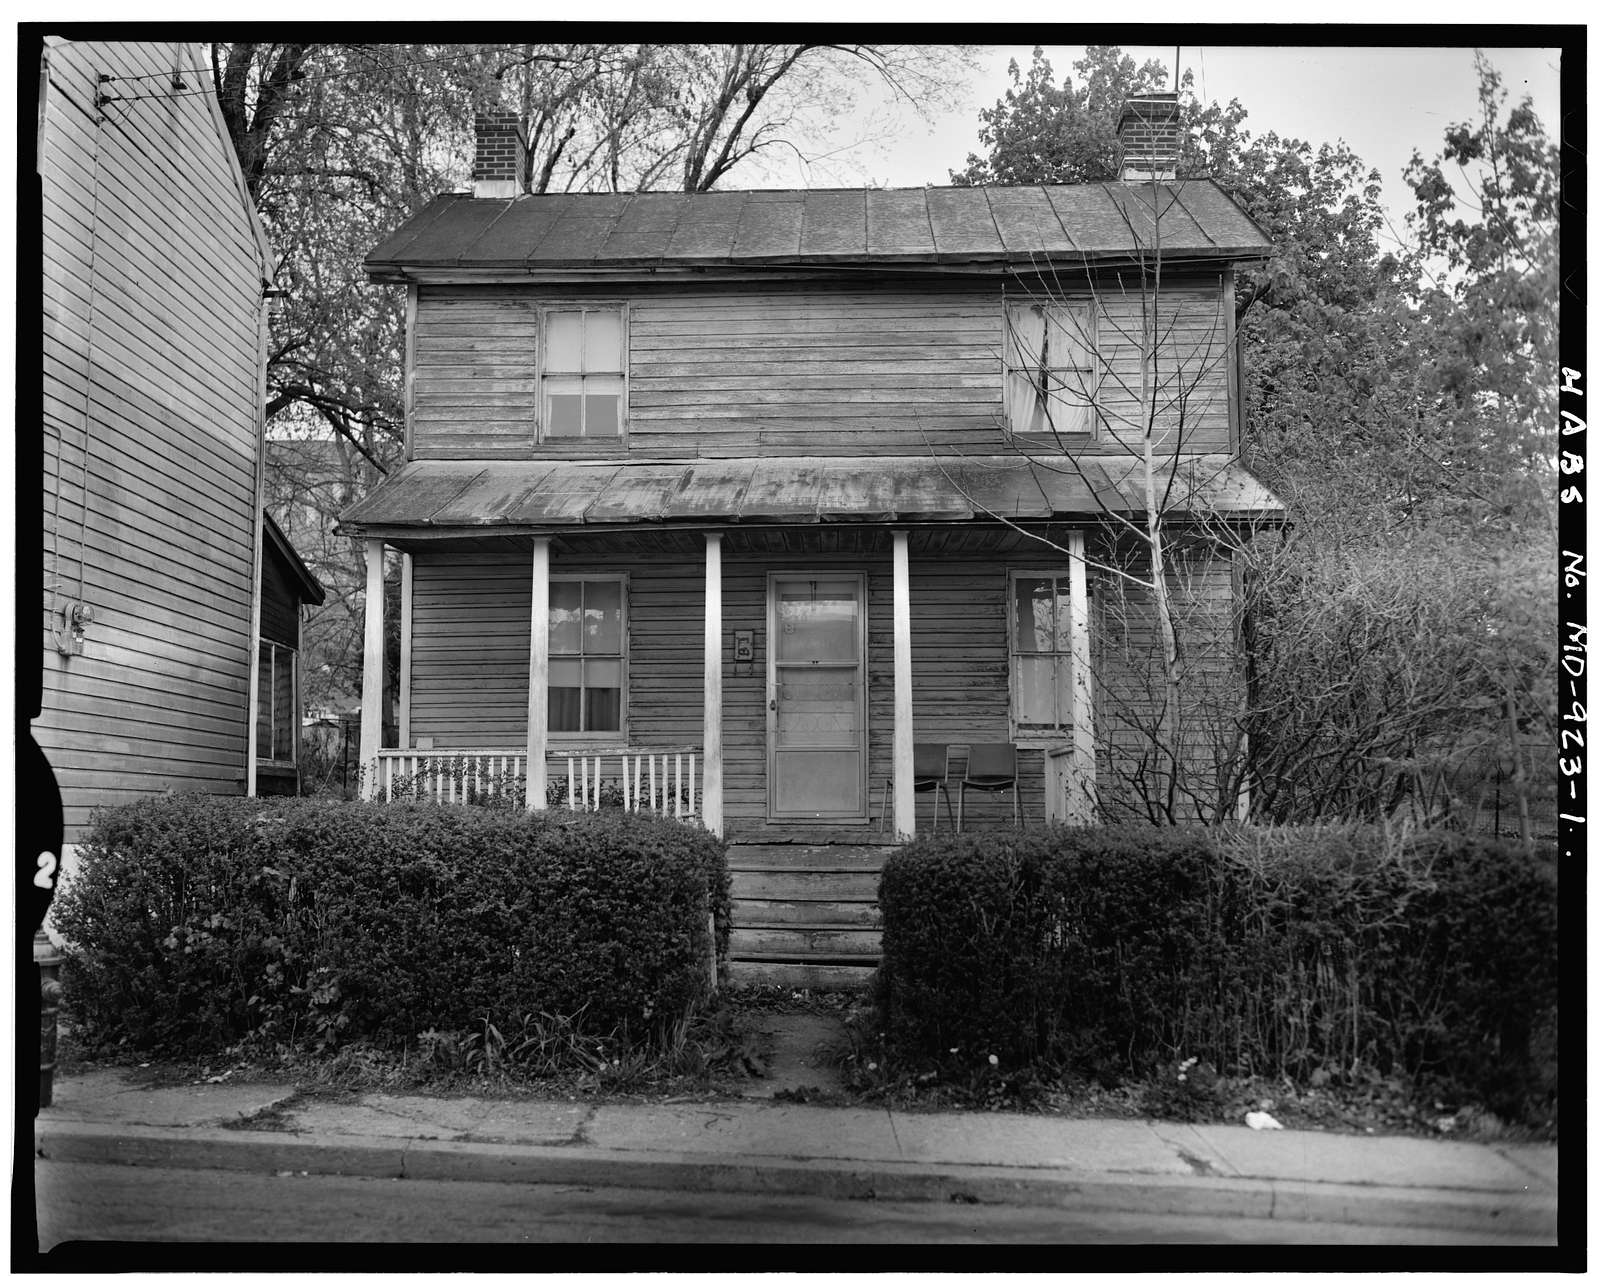 29 1/2 Union Street (House), Westminster, Carroll County, MD